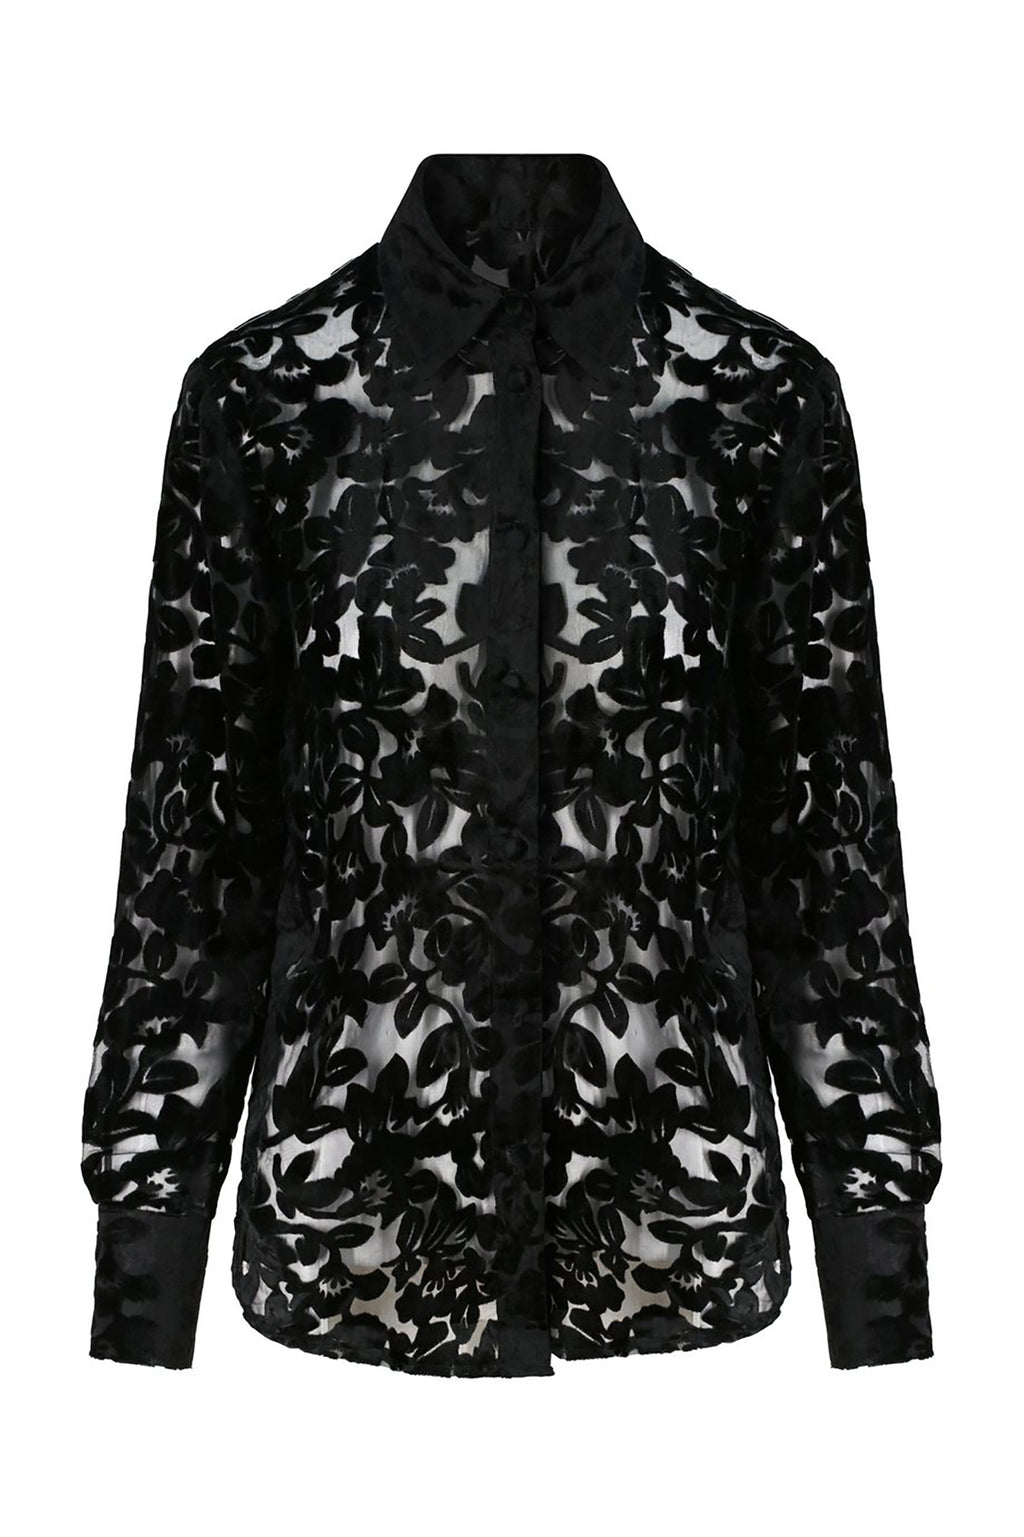 Ilona Rich Black Velvet Sheer Burn-out Shirt